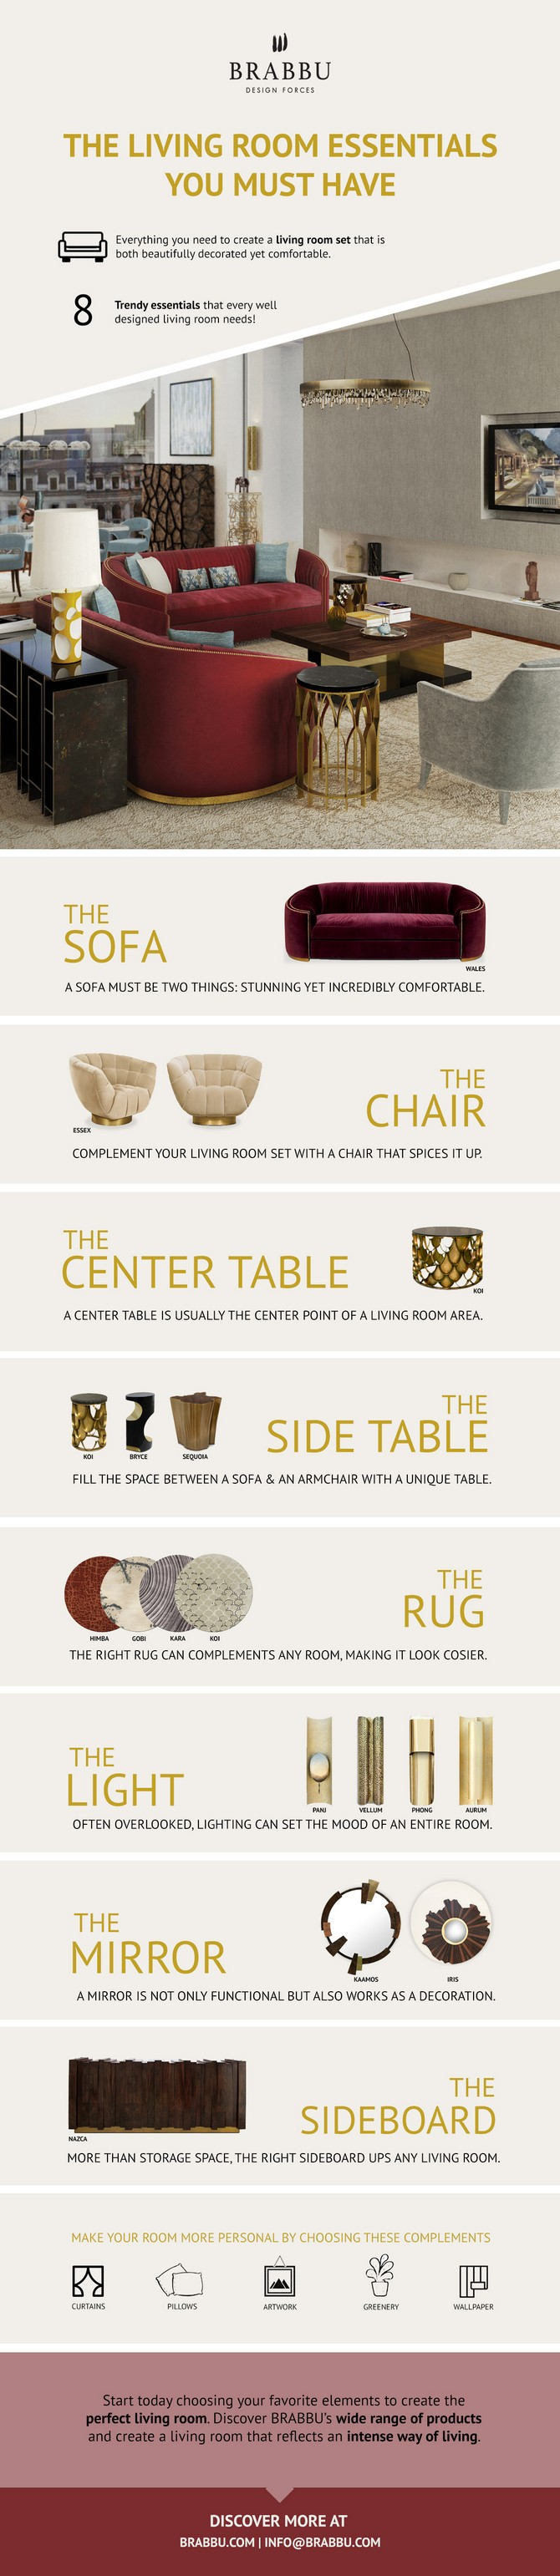 design rugs Design rug: a must-have living room essential! infografic